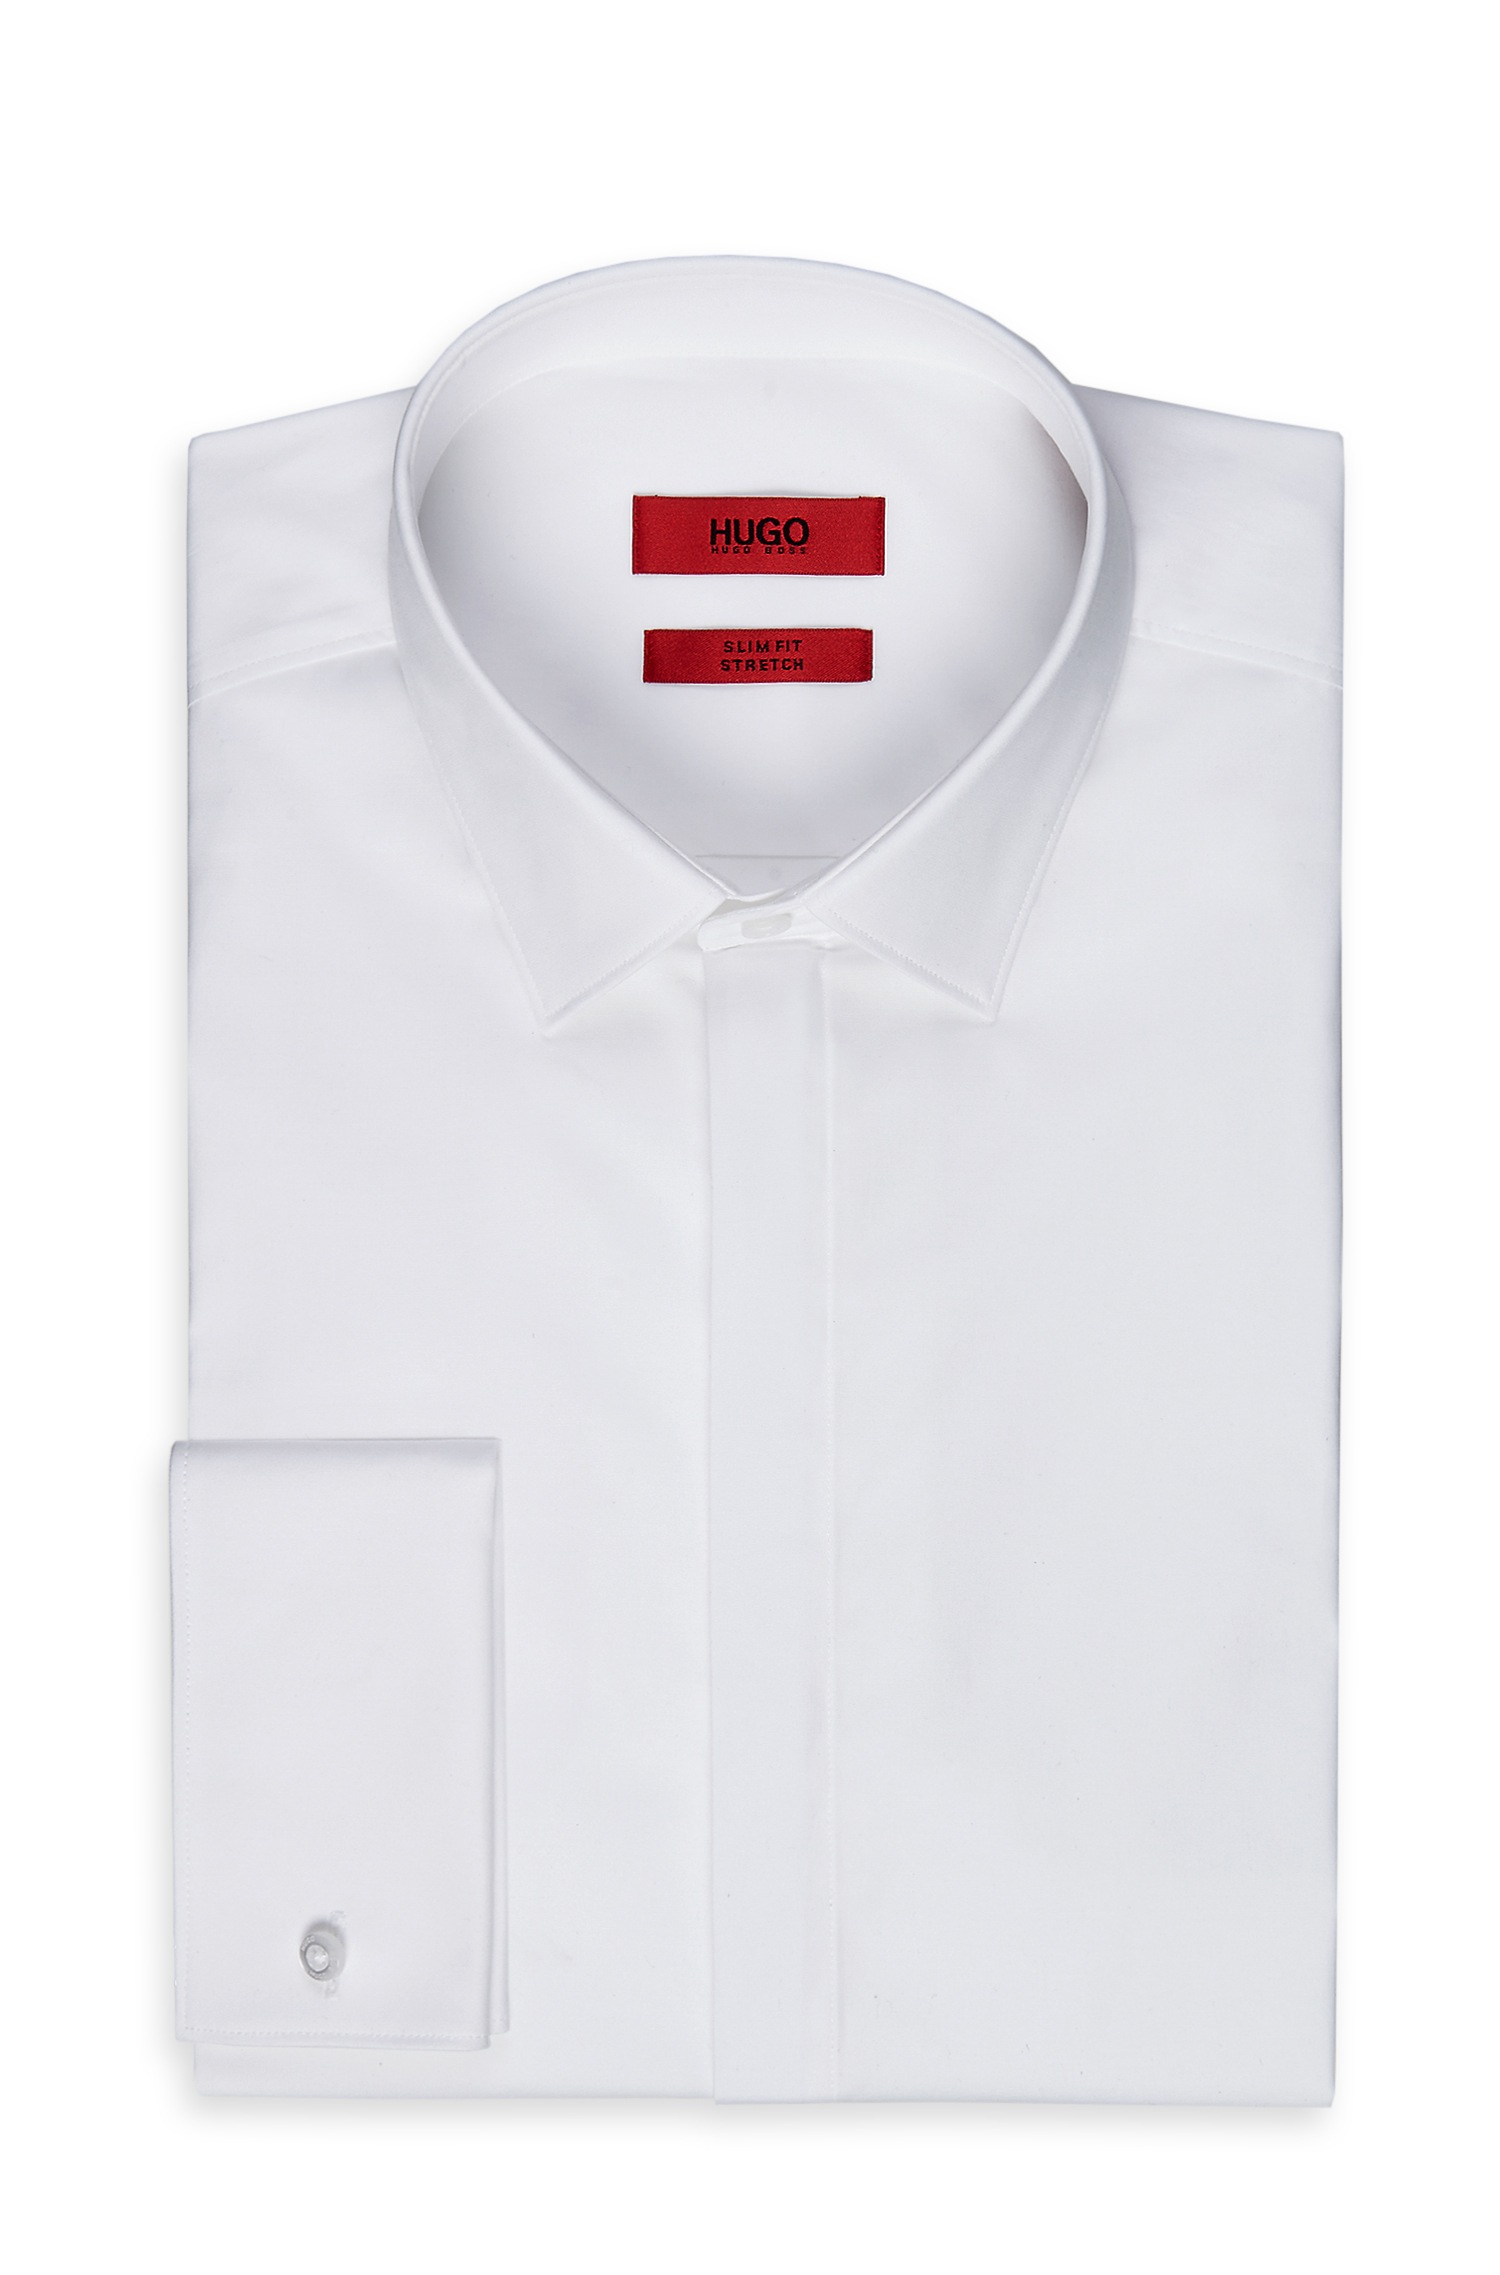 Hugo 39 eveningx 39 slim fit point collar stretch cotton White french cuff shirt slim fit